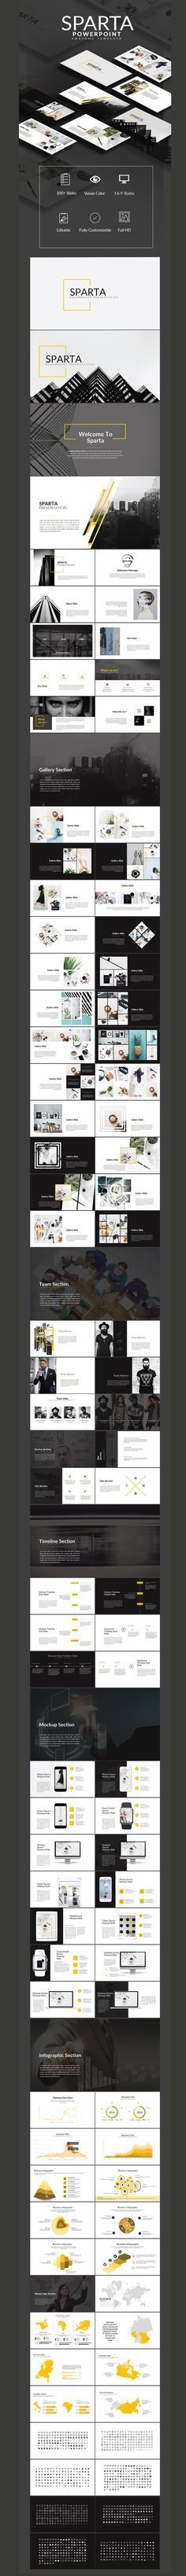 Sparta Powerpoint Multipurpose Presentation - PowerPoint Templates Presentation…